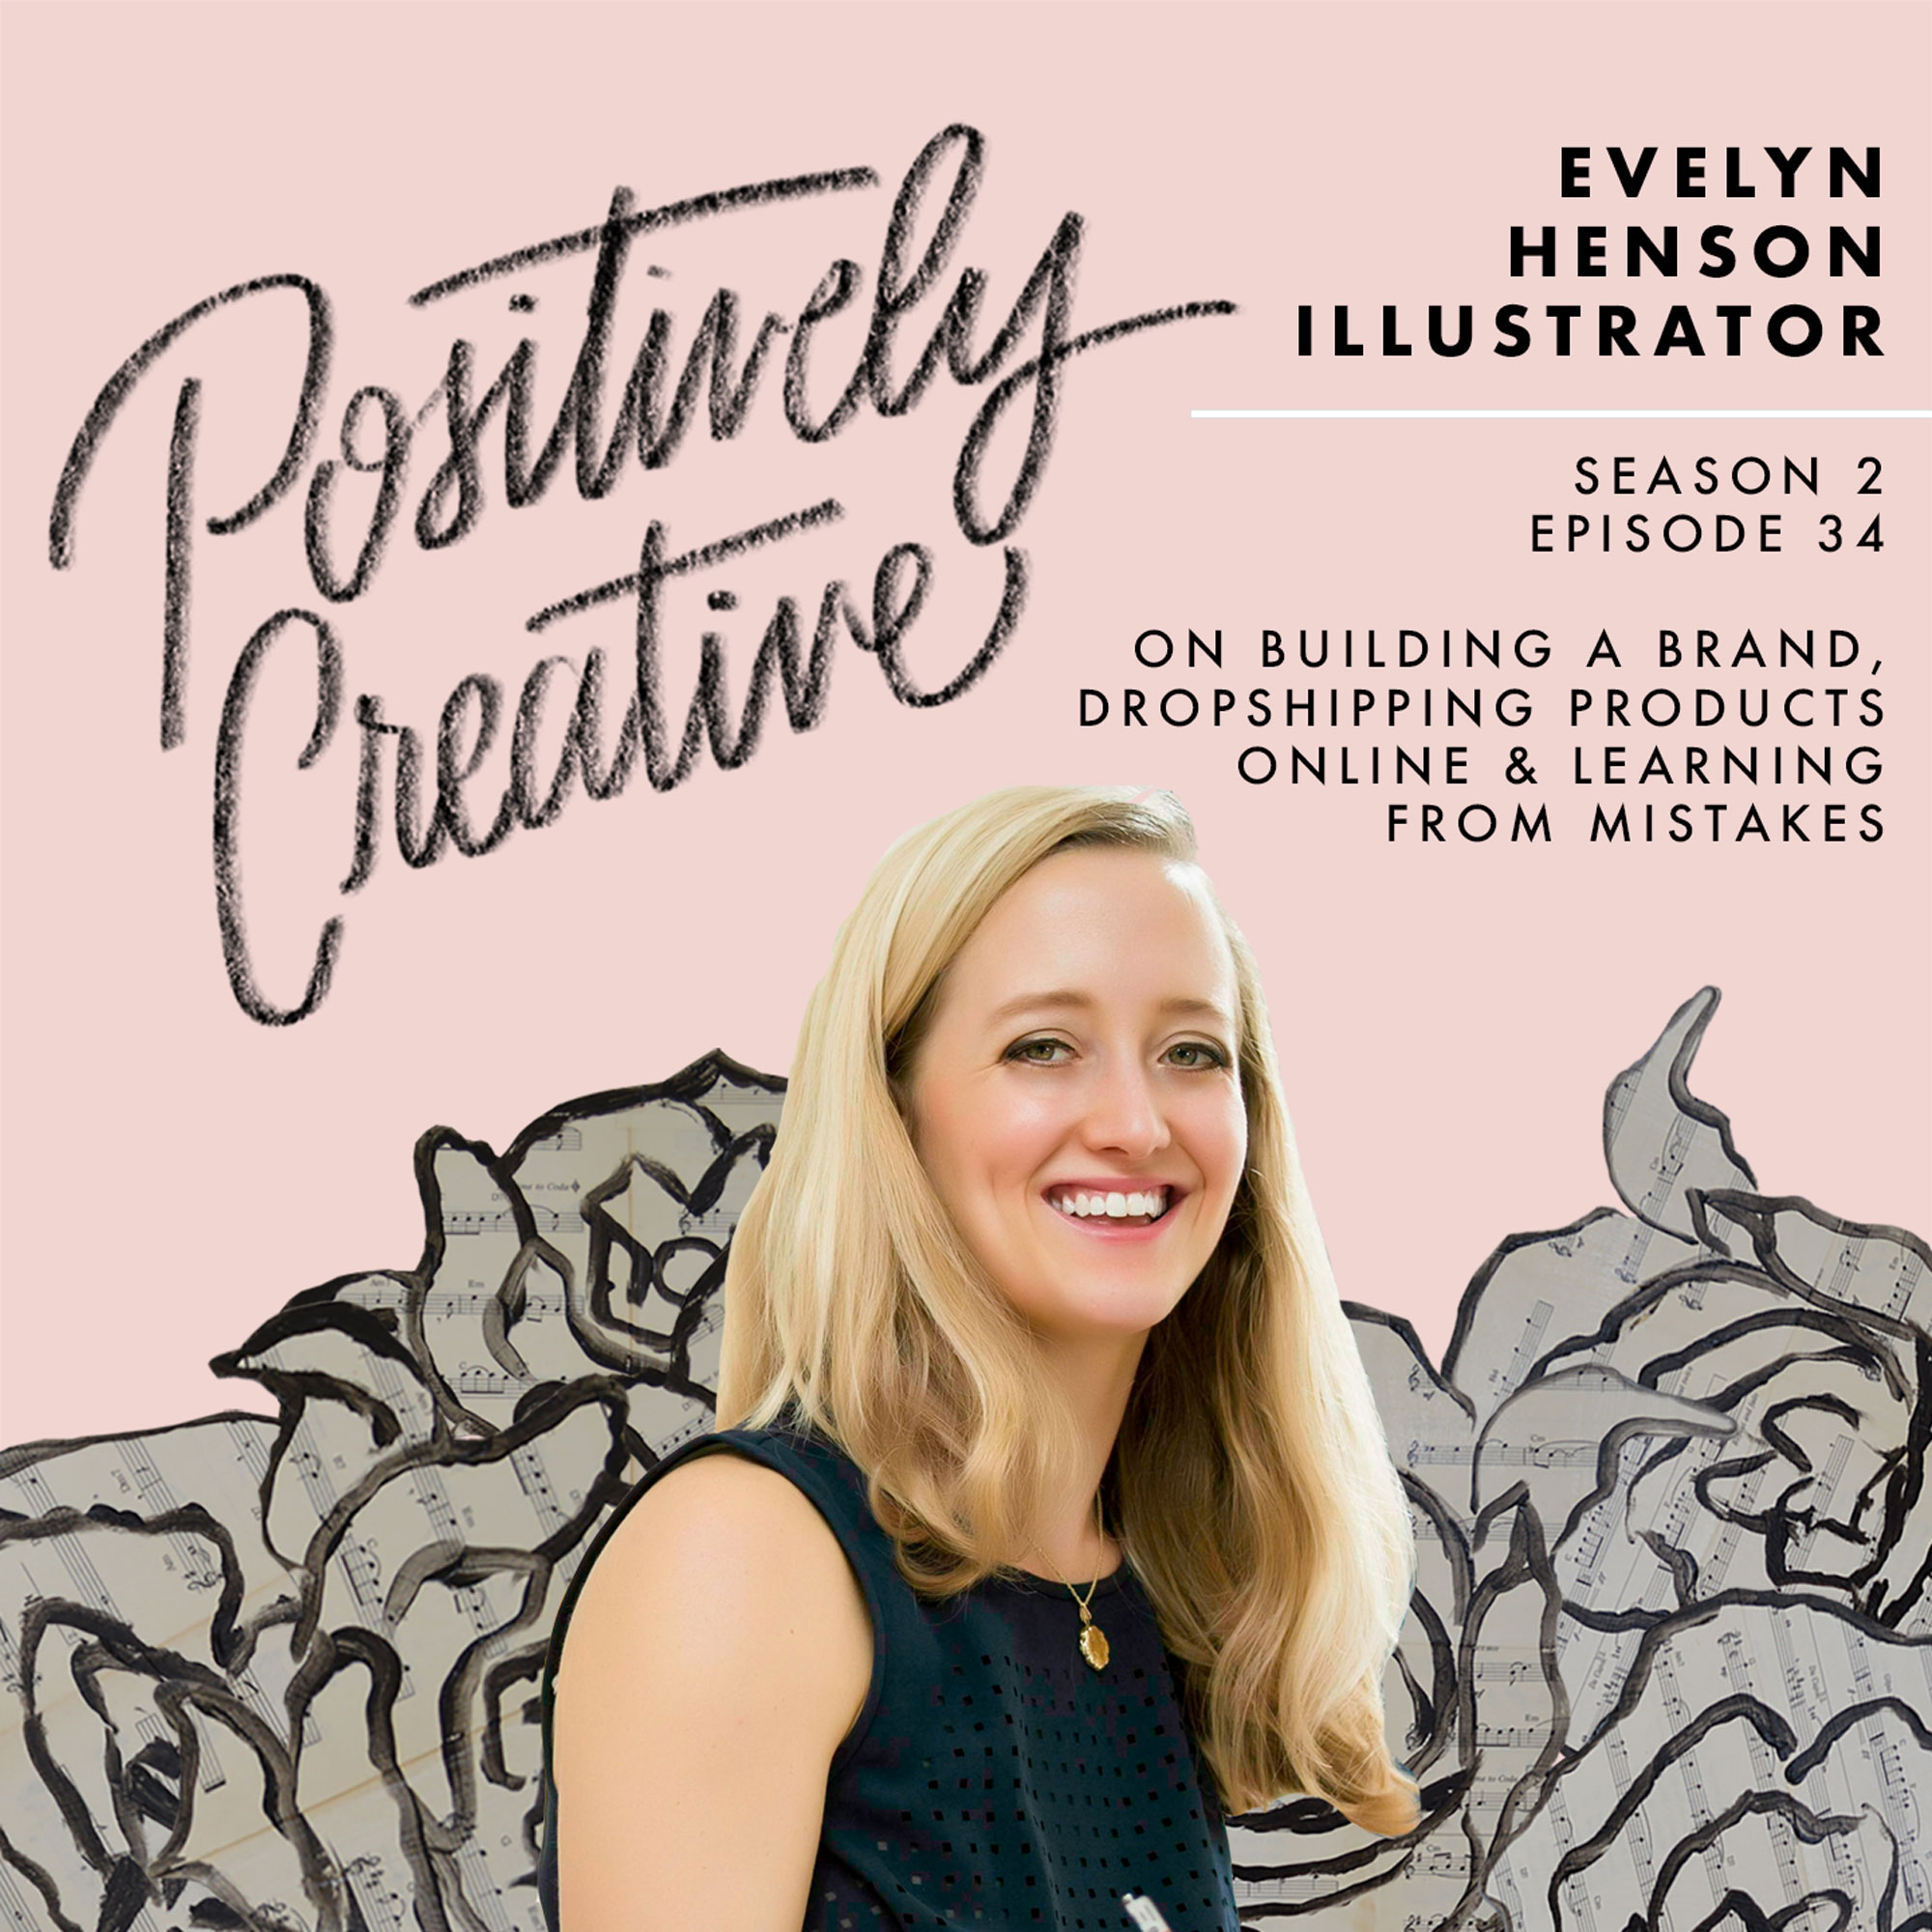 Artwork for Episode 34 - Evelyn Henson, Illustrator, on Building a Brand, Dropshipping Products Online & Learning From Mistakes